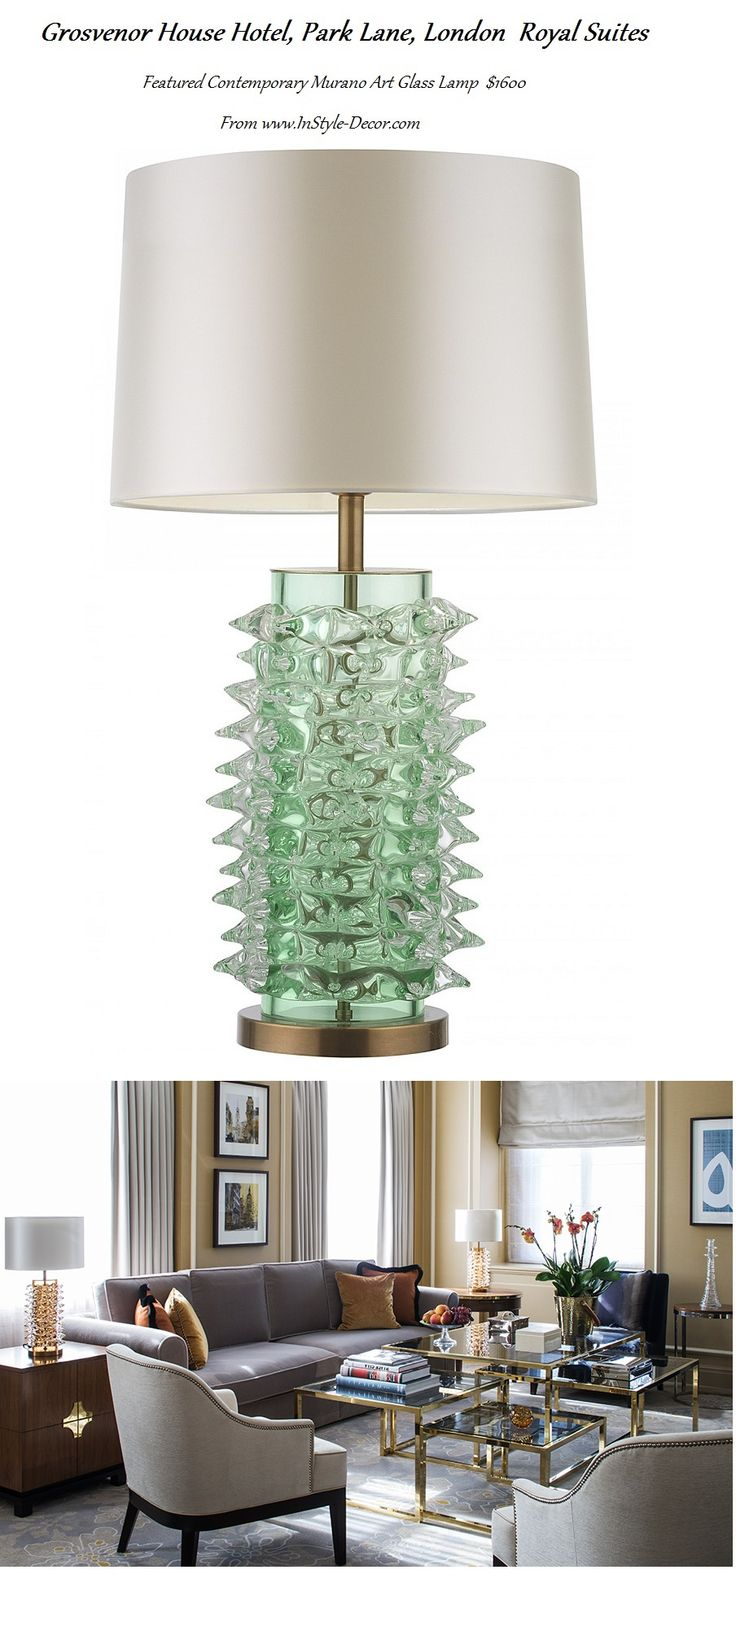 373 best lighting - table lamps images on pinterest | desk lamp